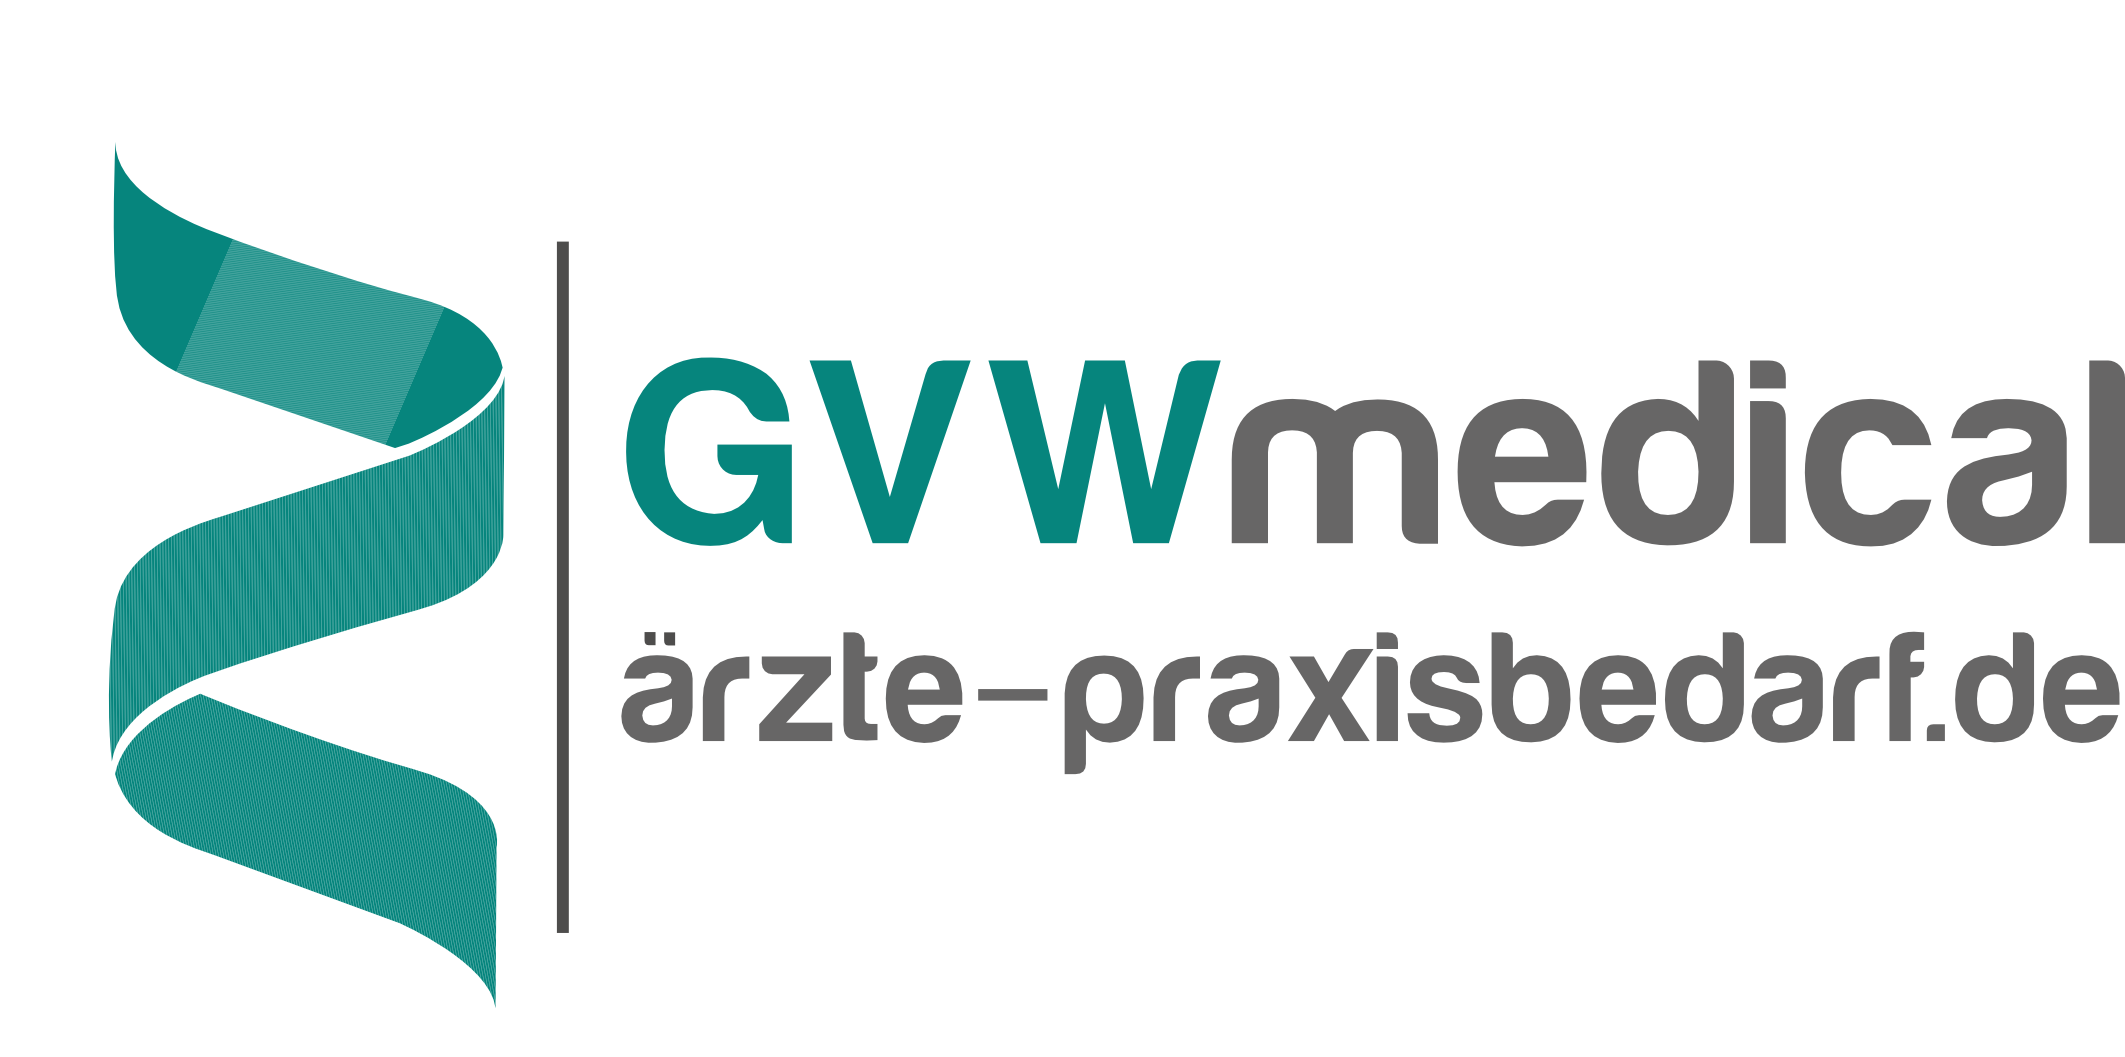 GVWmedical/GVW brands & services GmbH